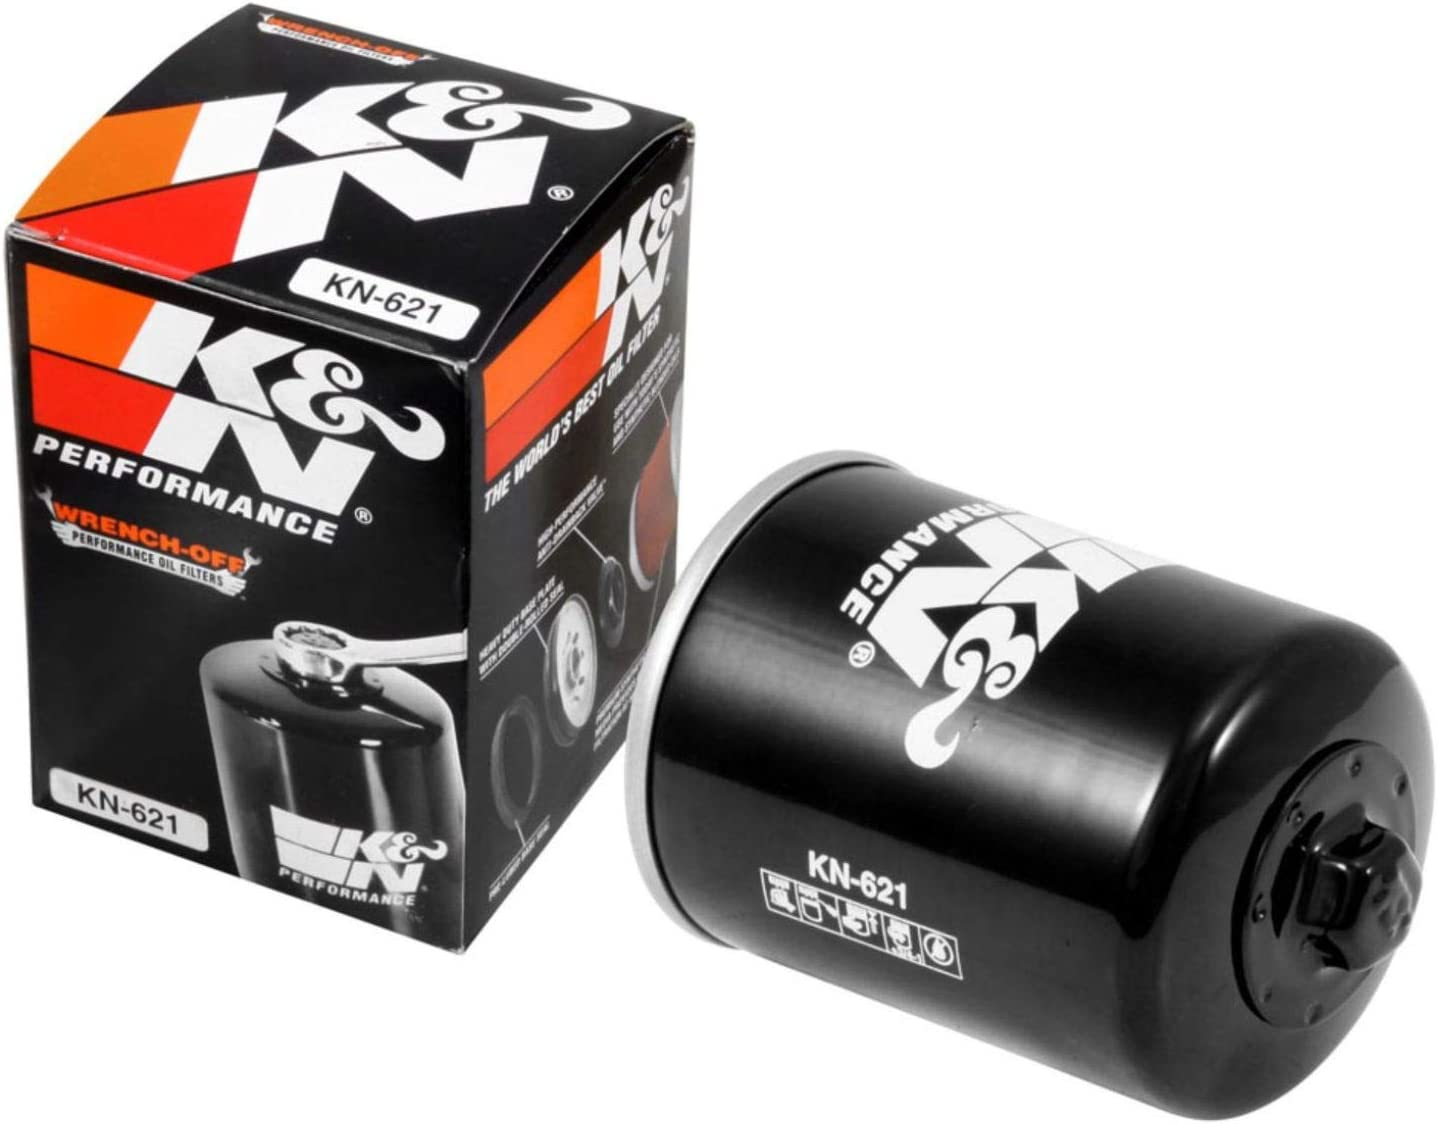 K&N Motorcycle Oil Filter: High Performance, Premium, Designed to be used with Synthetic or Conventional Oils: Fits Select Artic Cat Vehicles, KN-621